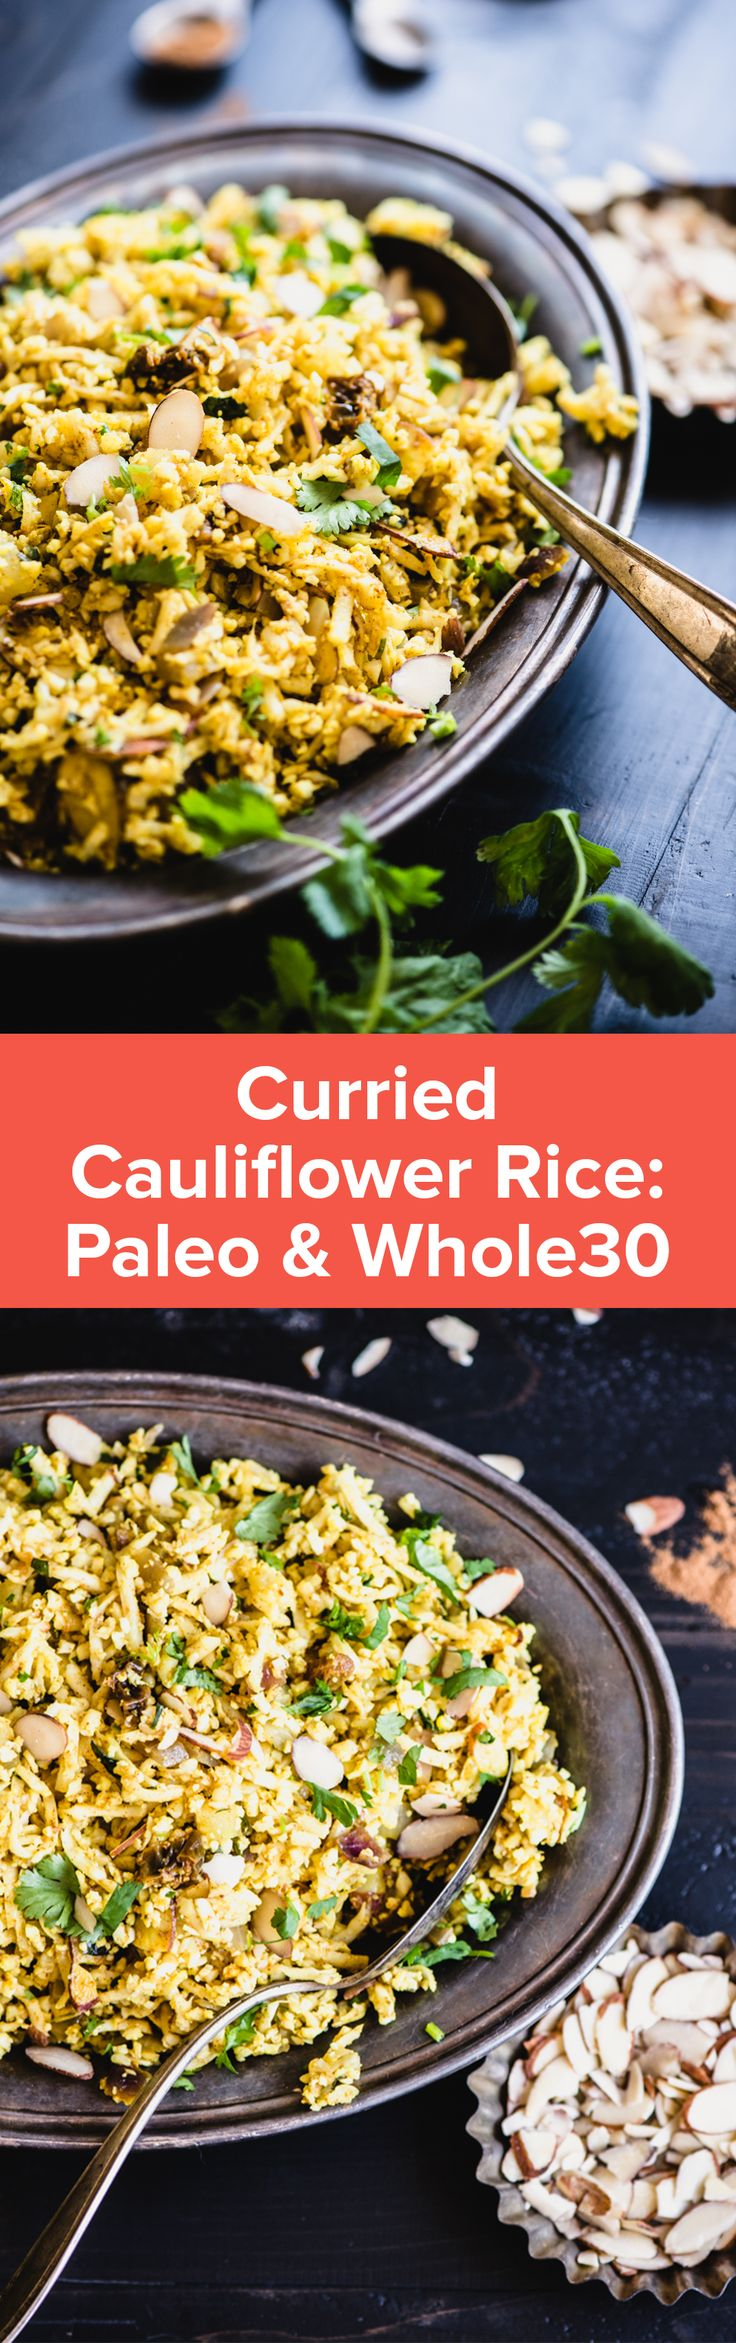 Curried Cauliflower Rice Recipe | StupidEasyPaleo.com